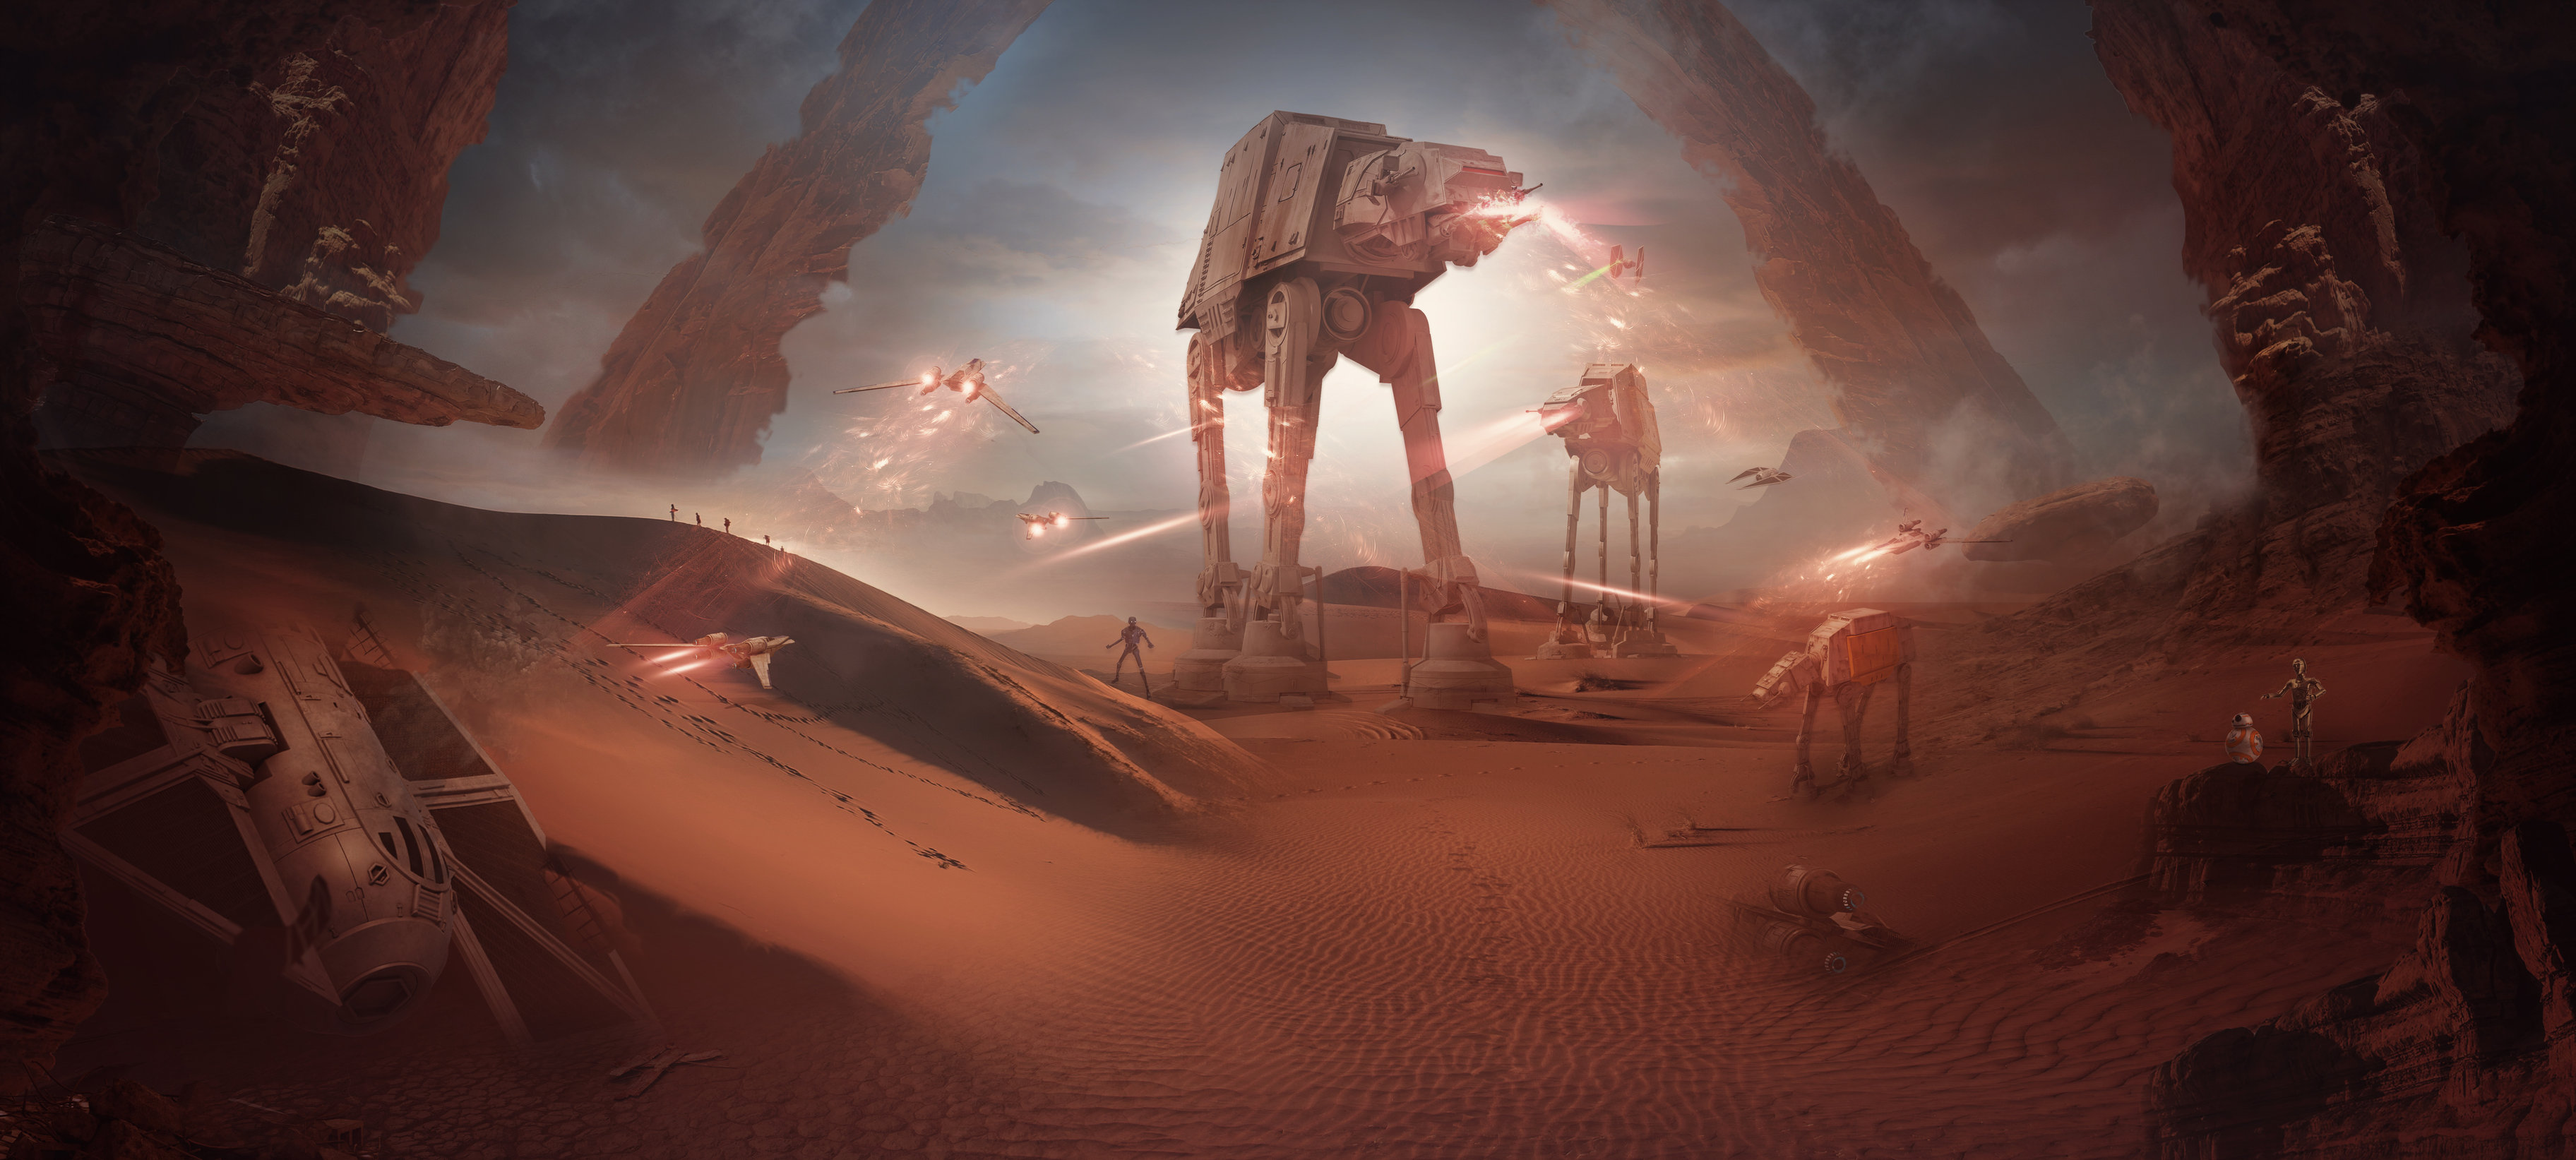 Star Wars Hd Wallpaper Background Image 3648x1643 Id 991379 Wallpaper Abyss